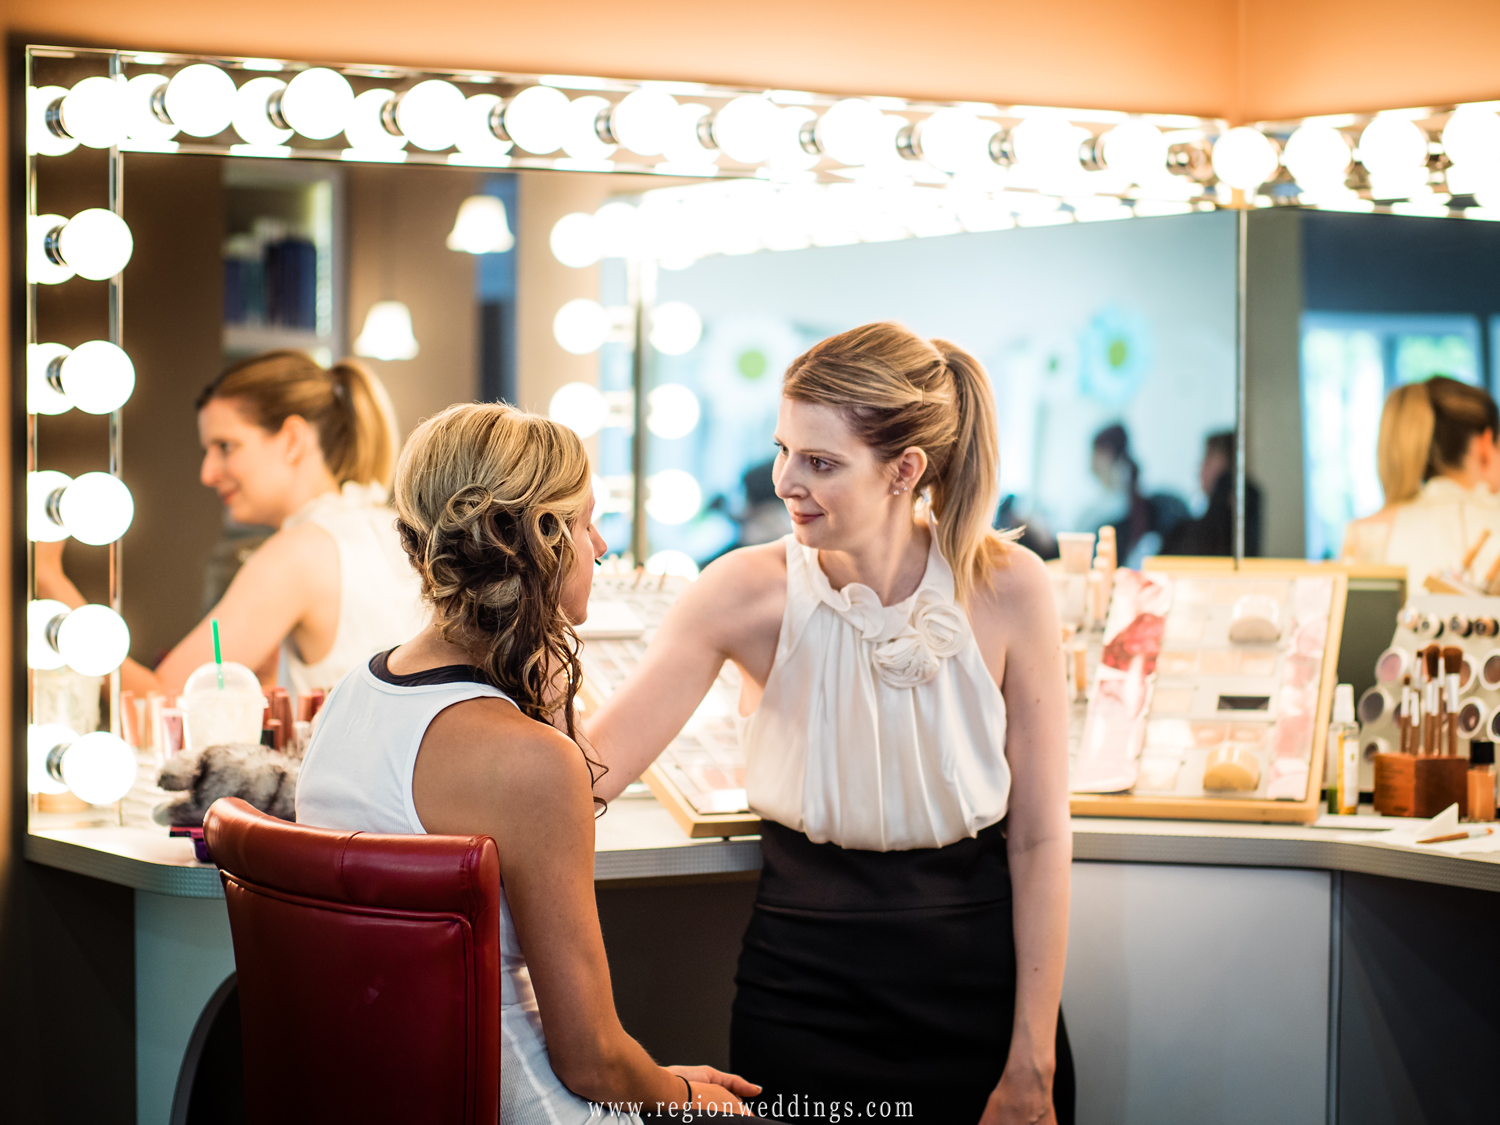 The bride gets ready for her wedding at Salon Amara in downtown Valparaiso.